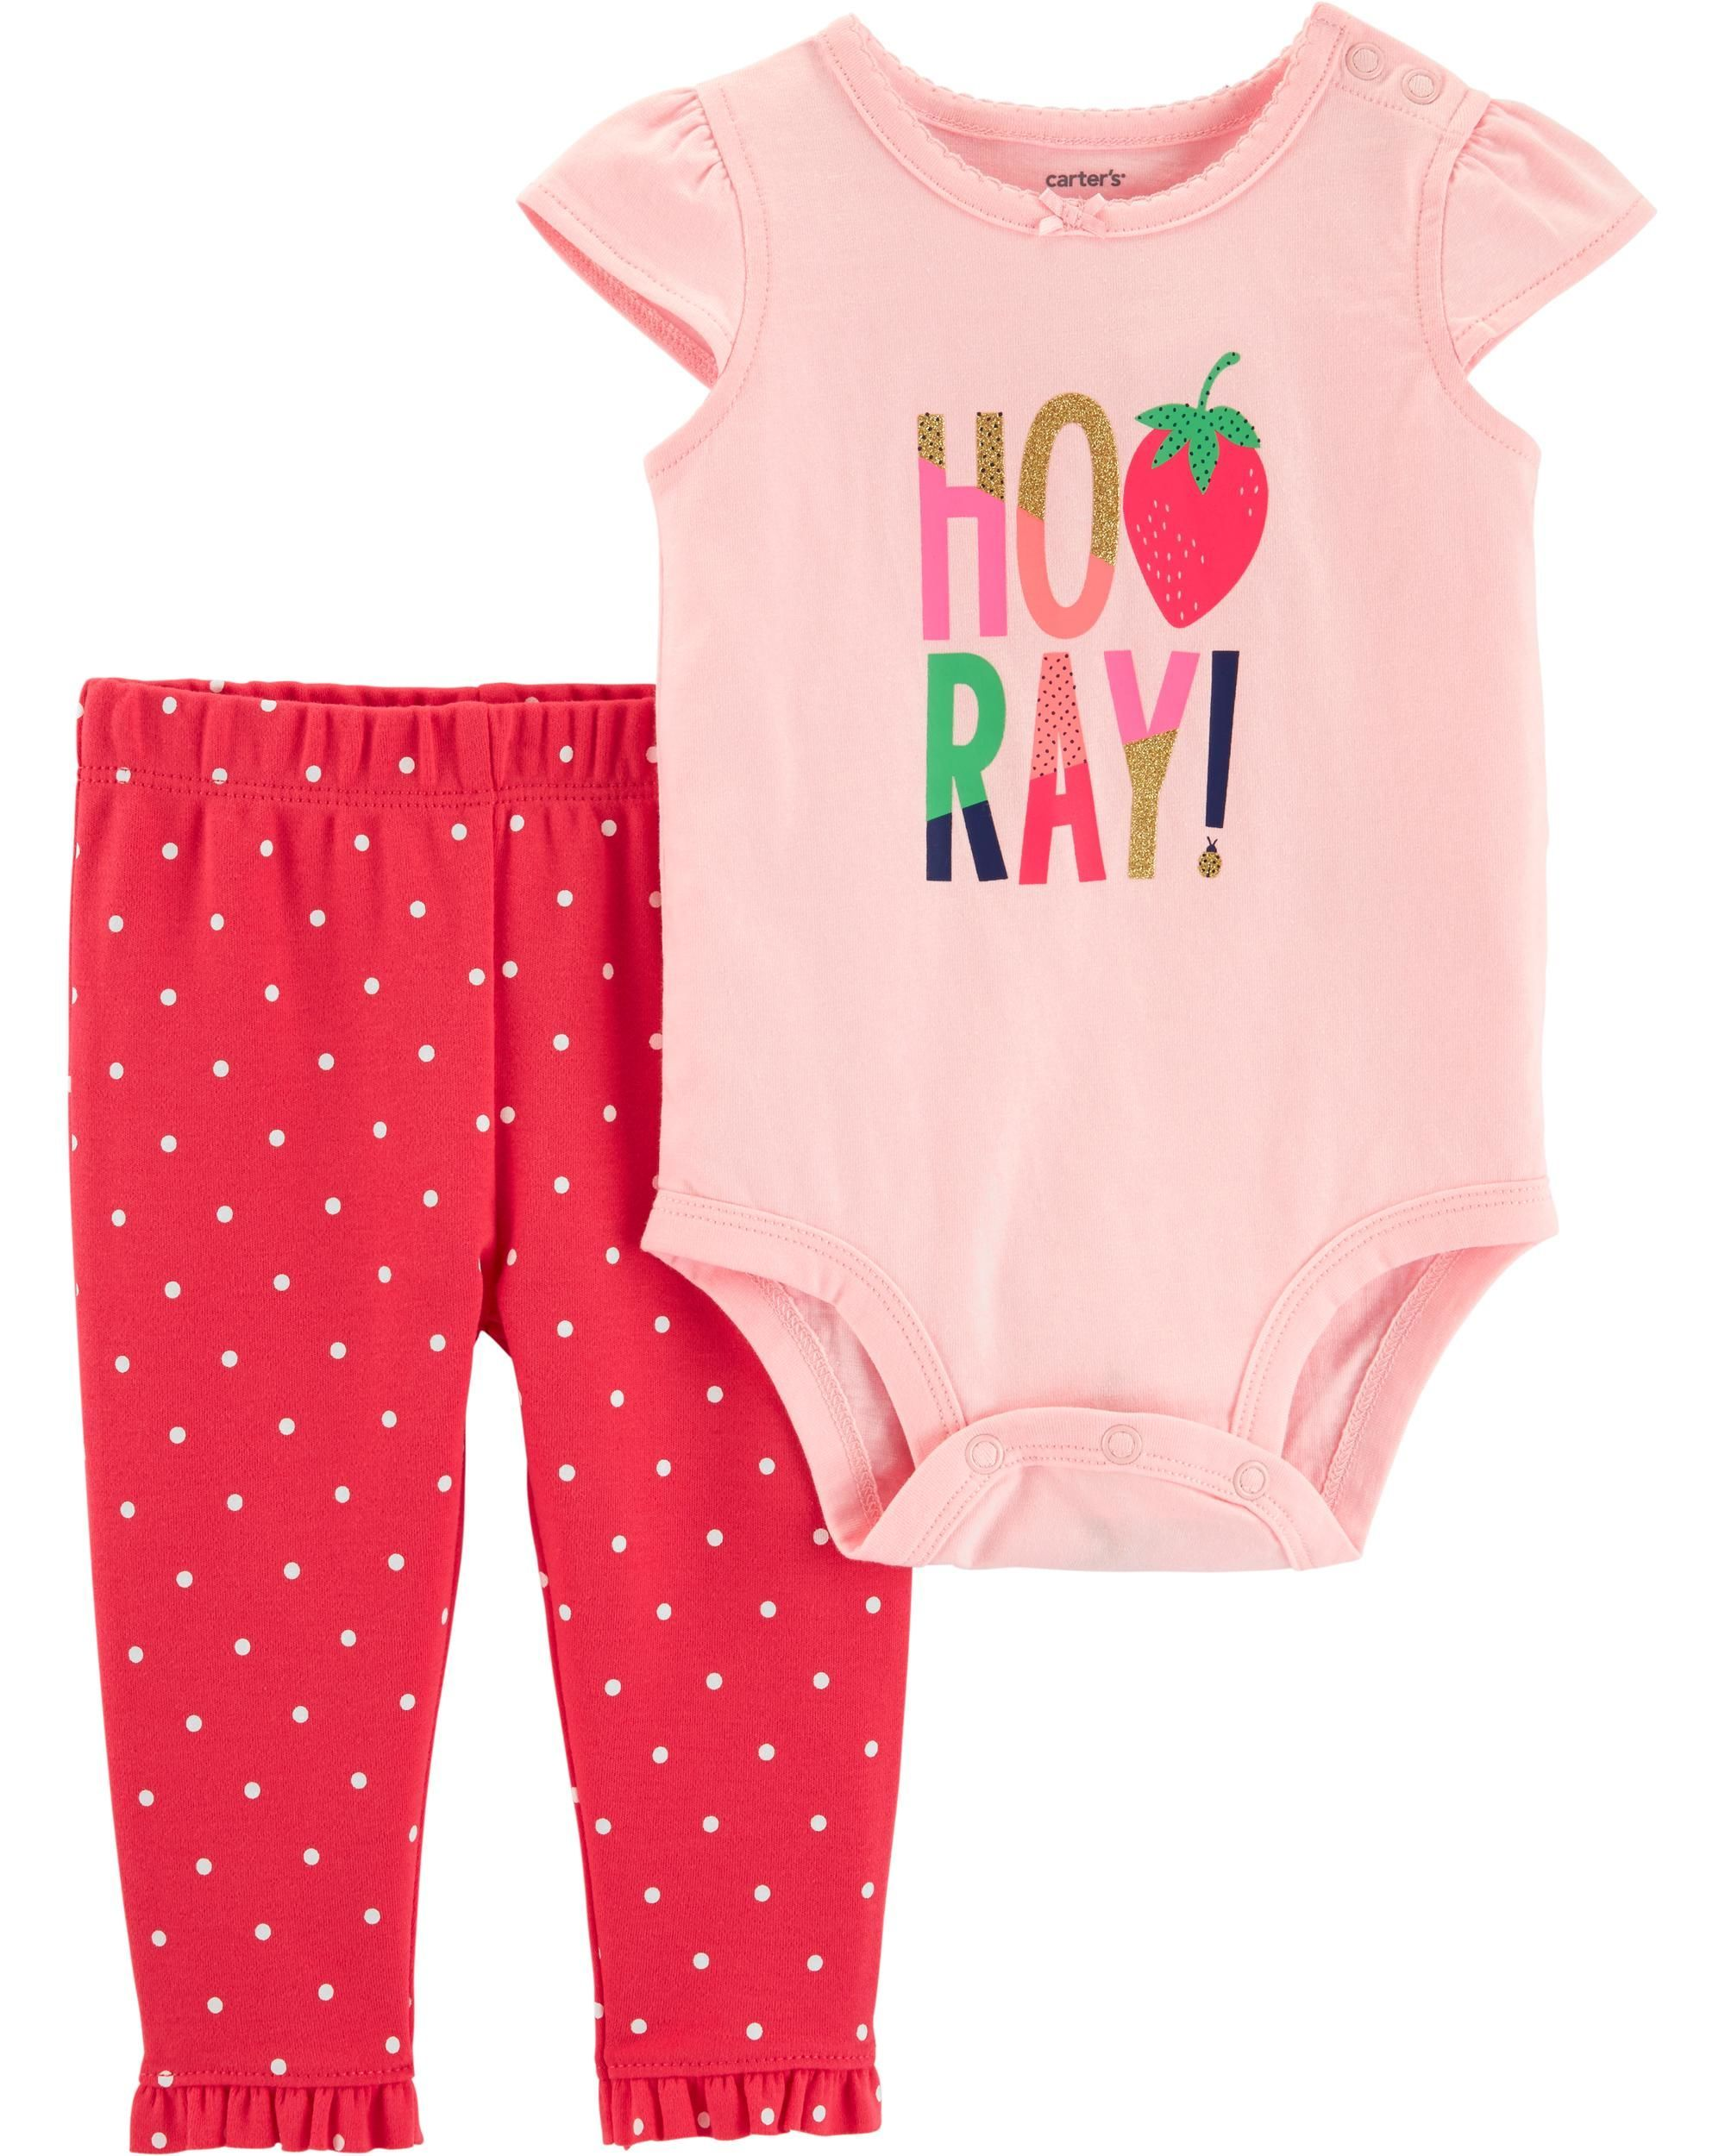 5a870a438 2-Piece Strawberry Bodysuit Pant Set | Baby Inc. | Carters baby ...